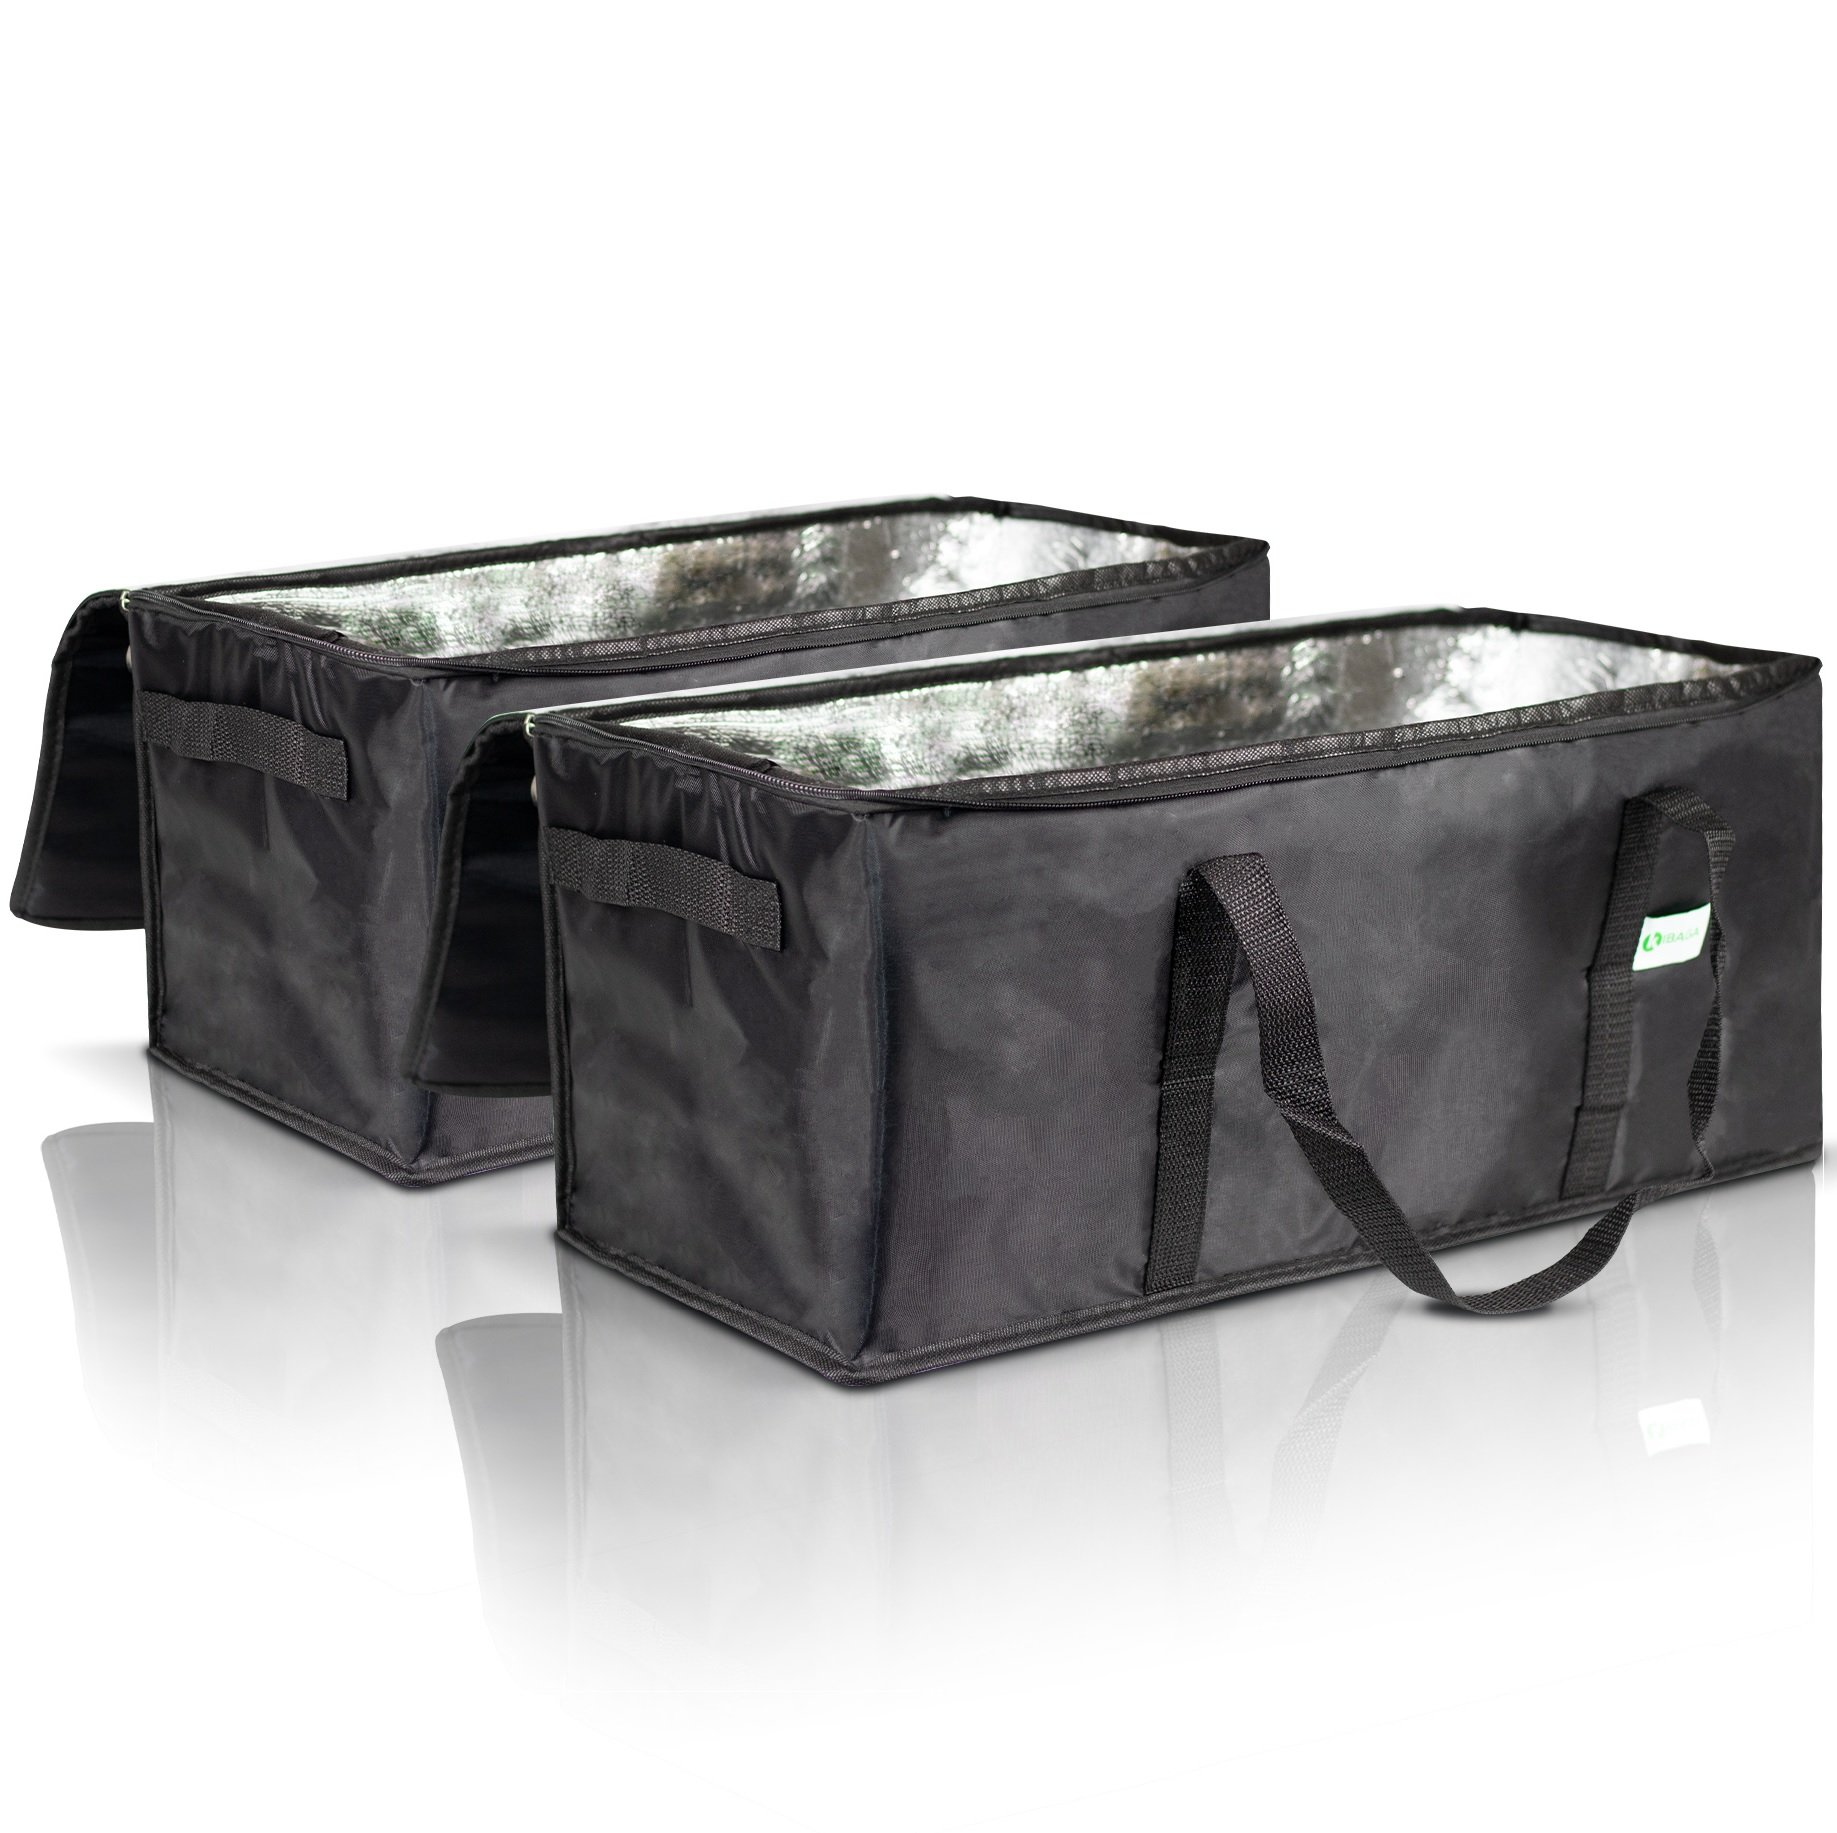 Premium Insulated Food Delivery Bags Set of 2 - Waterproof Restaurant Delivery Bags 22'' x 10'' x 10'' - Perfect Commercial Food Warmer Bags to Bring Hot/Cold Food Home